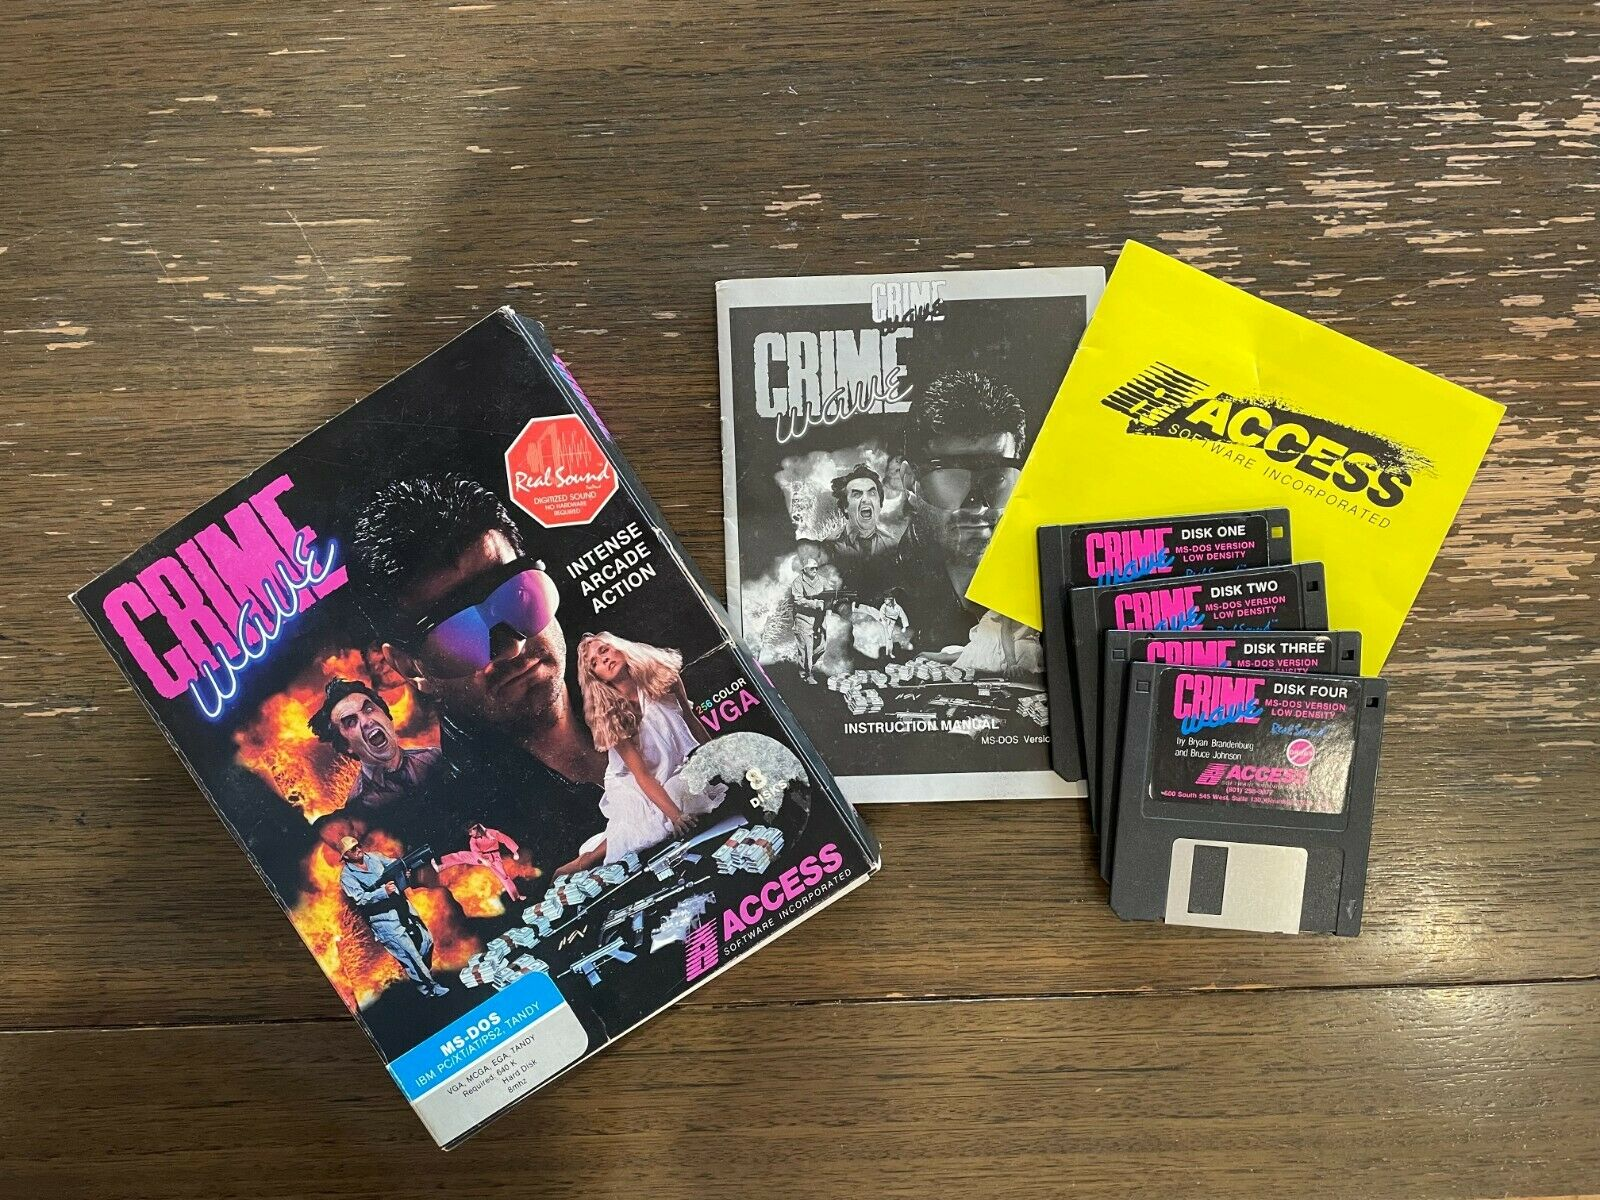 Computer Games - Original Crime Wave Computer Game from 1990, with original disks and manuals